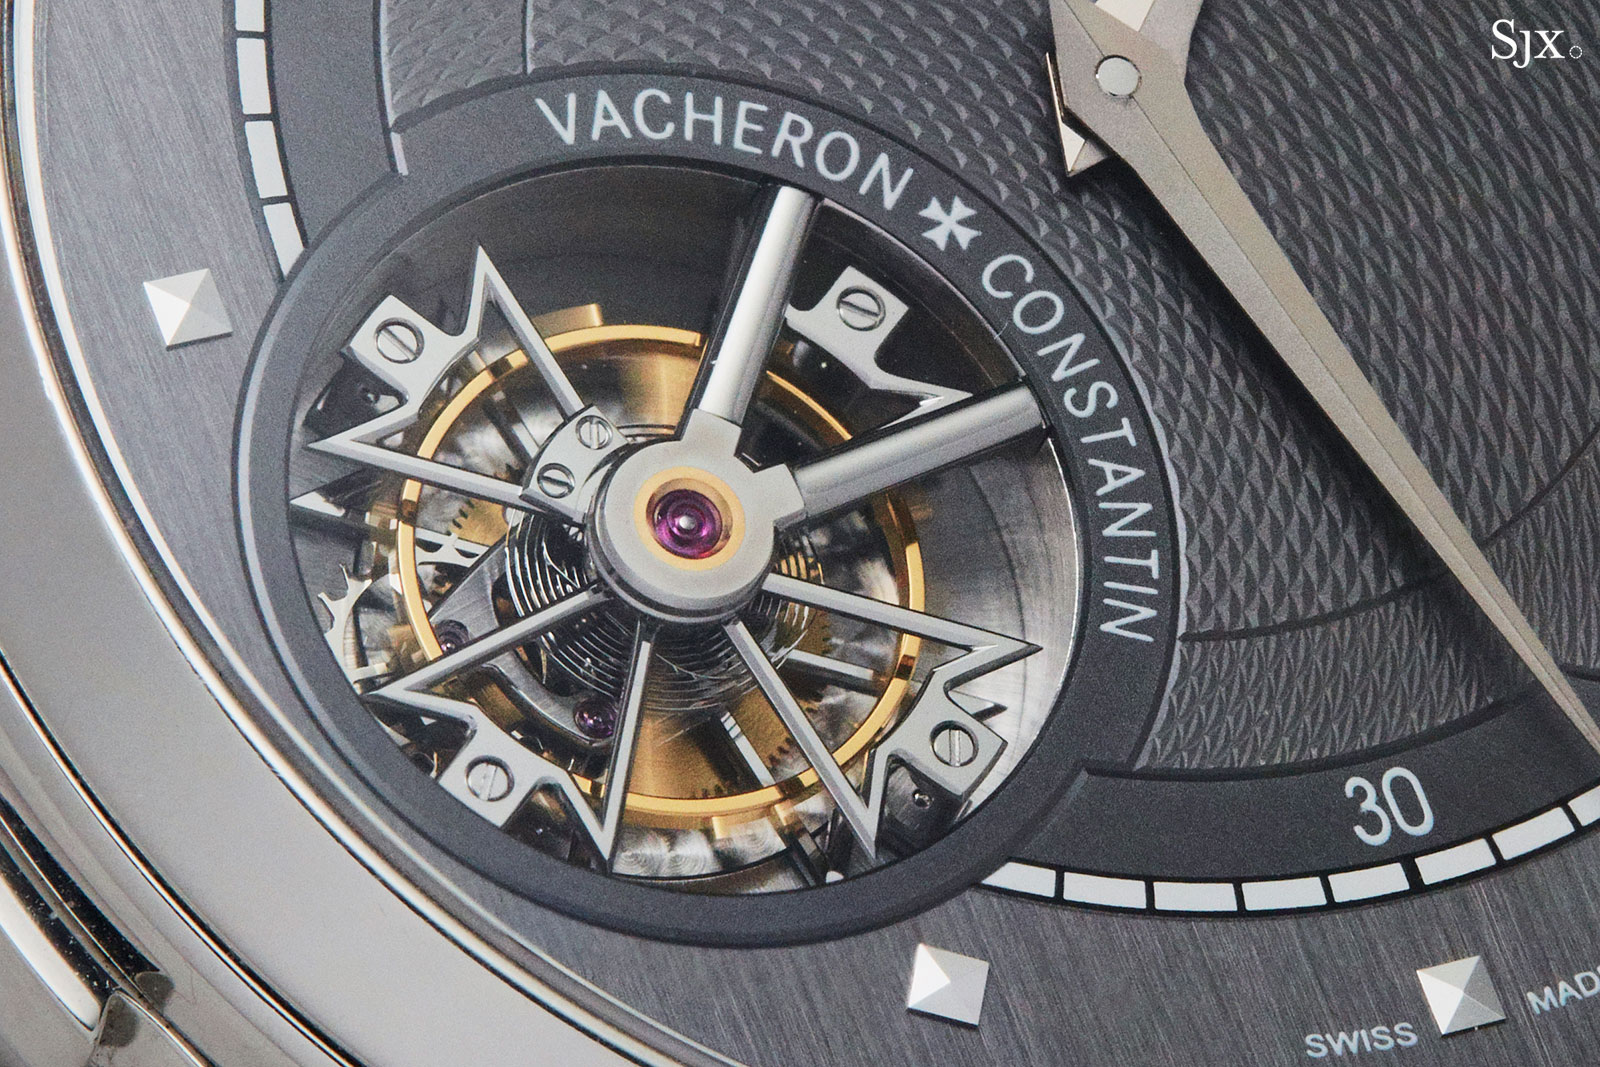 Vacheron Constantin Cabinotiers grand complication 30016-000P 5